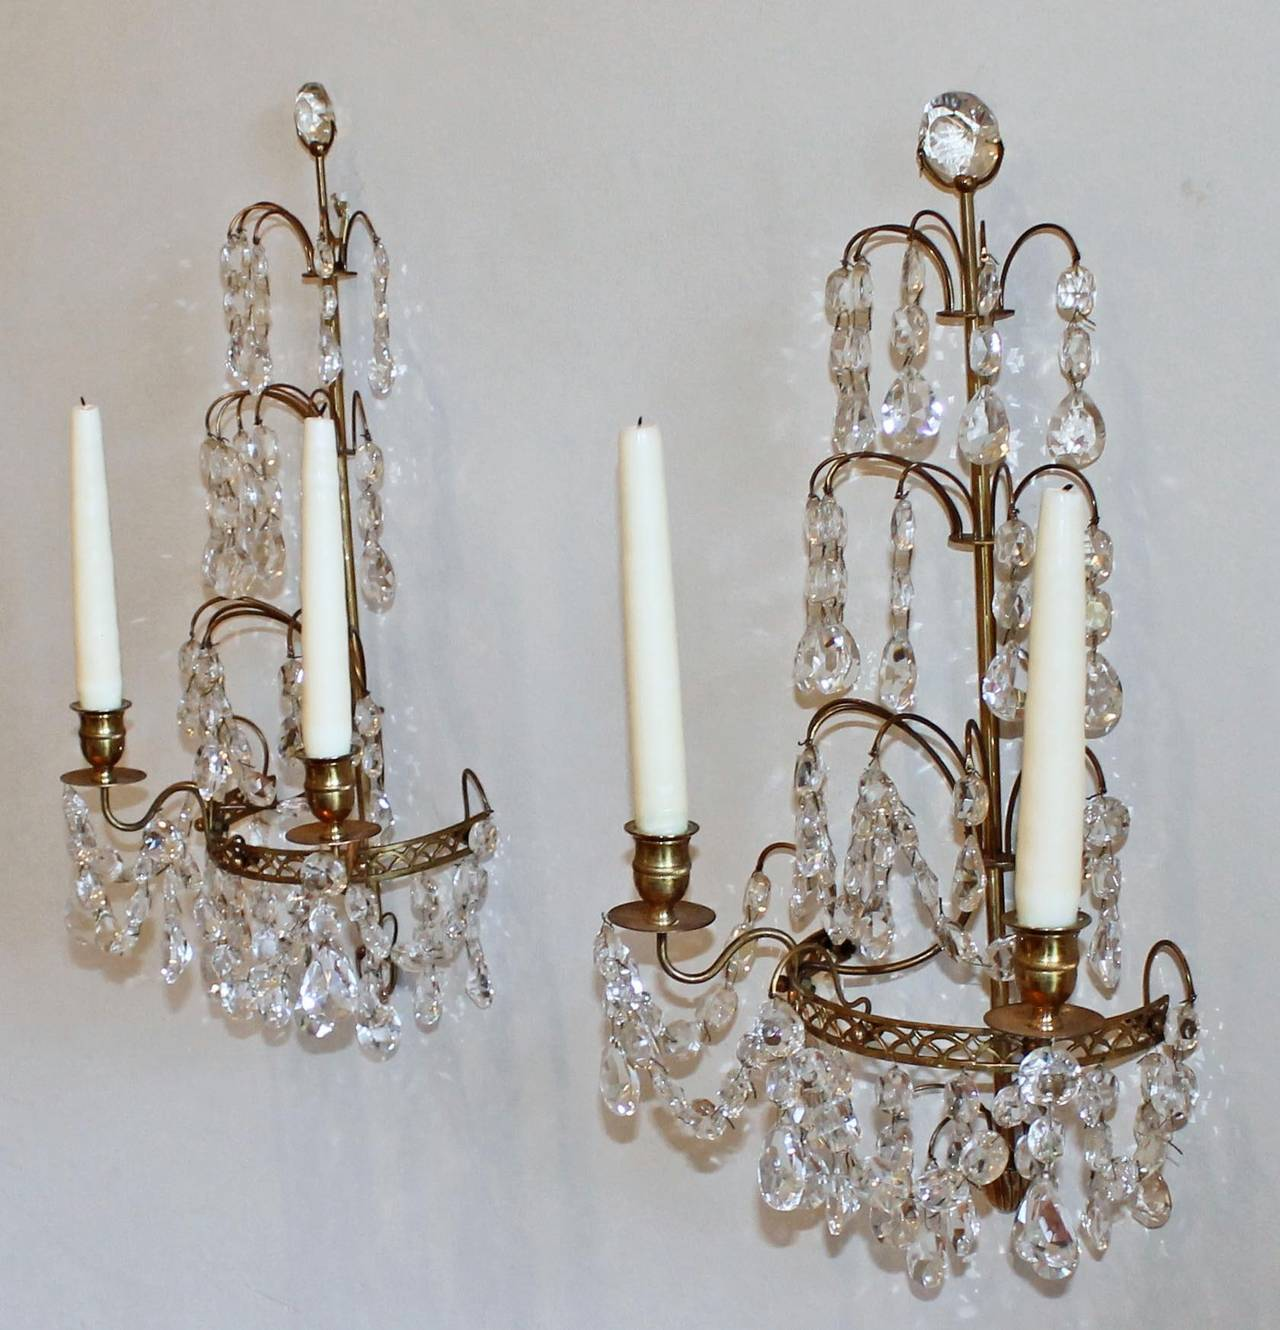 Wall Sconces For Candles With Crystals : Pair of Swedish Gustavian Style, Crystal and Bronze Candle Wall Sconces For Sale at 1stdibs